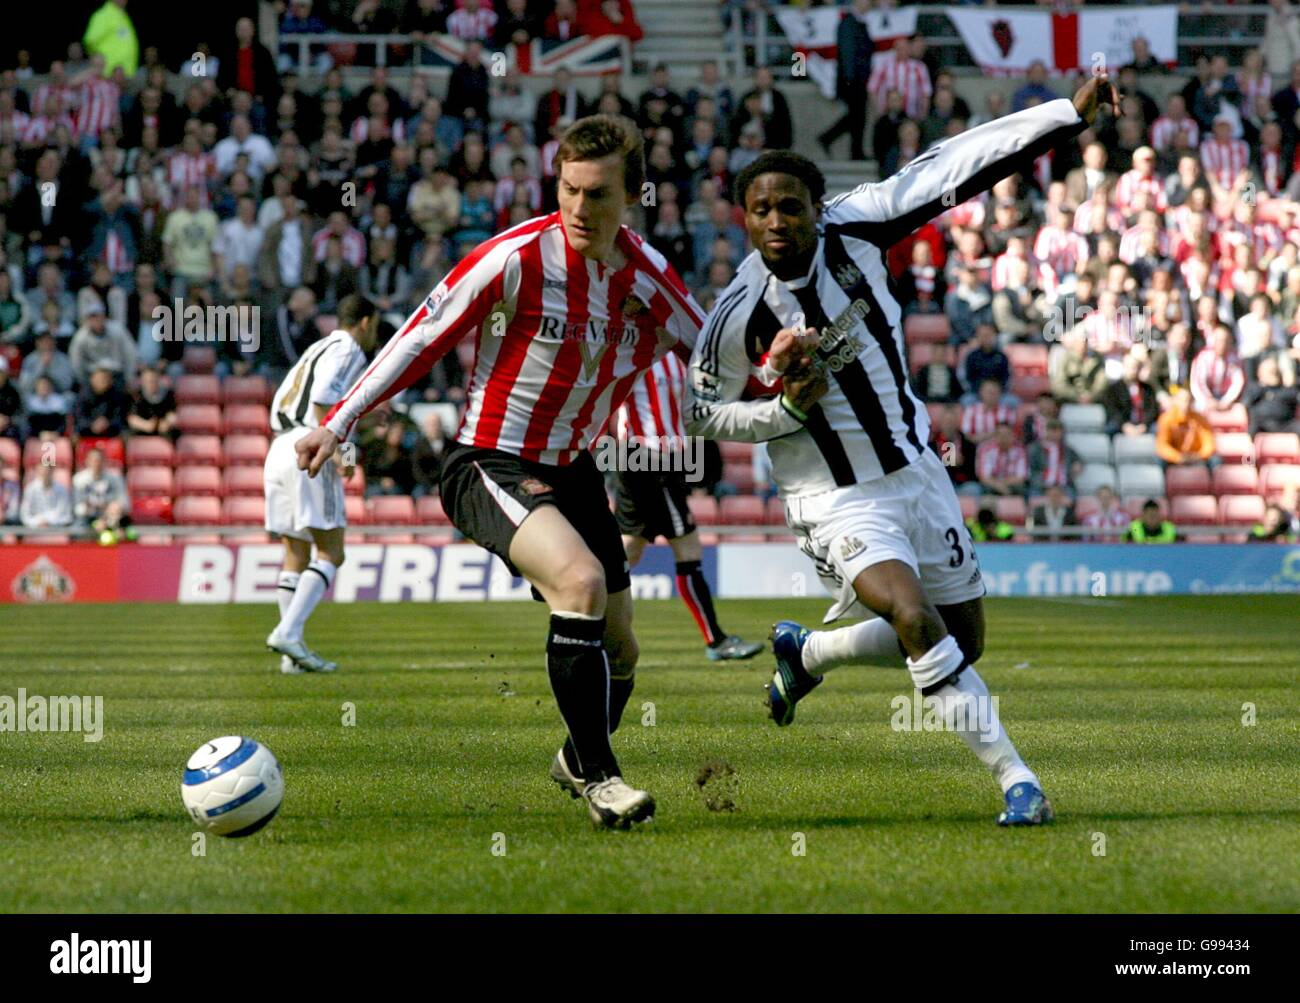 Soccer - FA Barclays Premiership - Sunderland v Newcastle United - The Stadium of Light - Stock Image